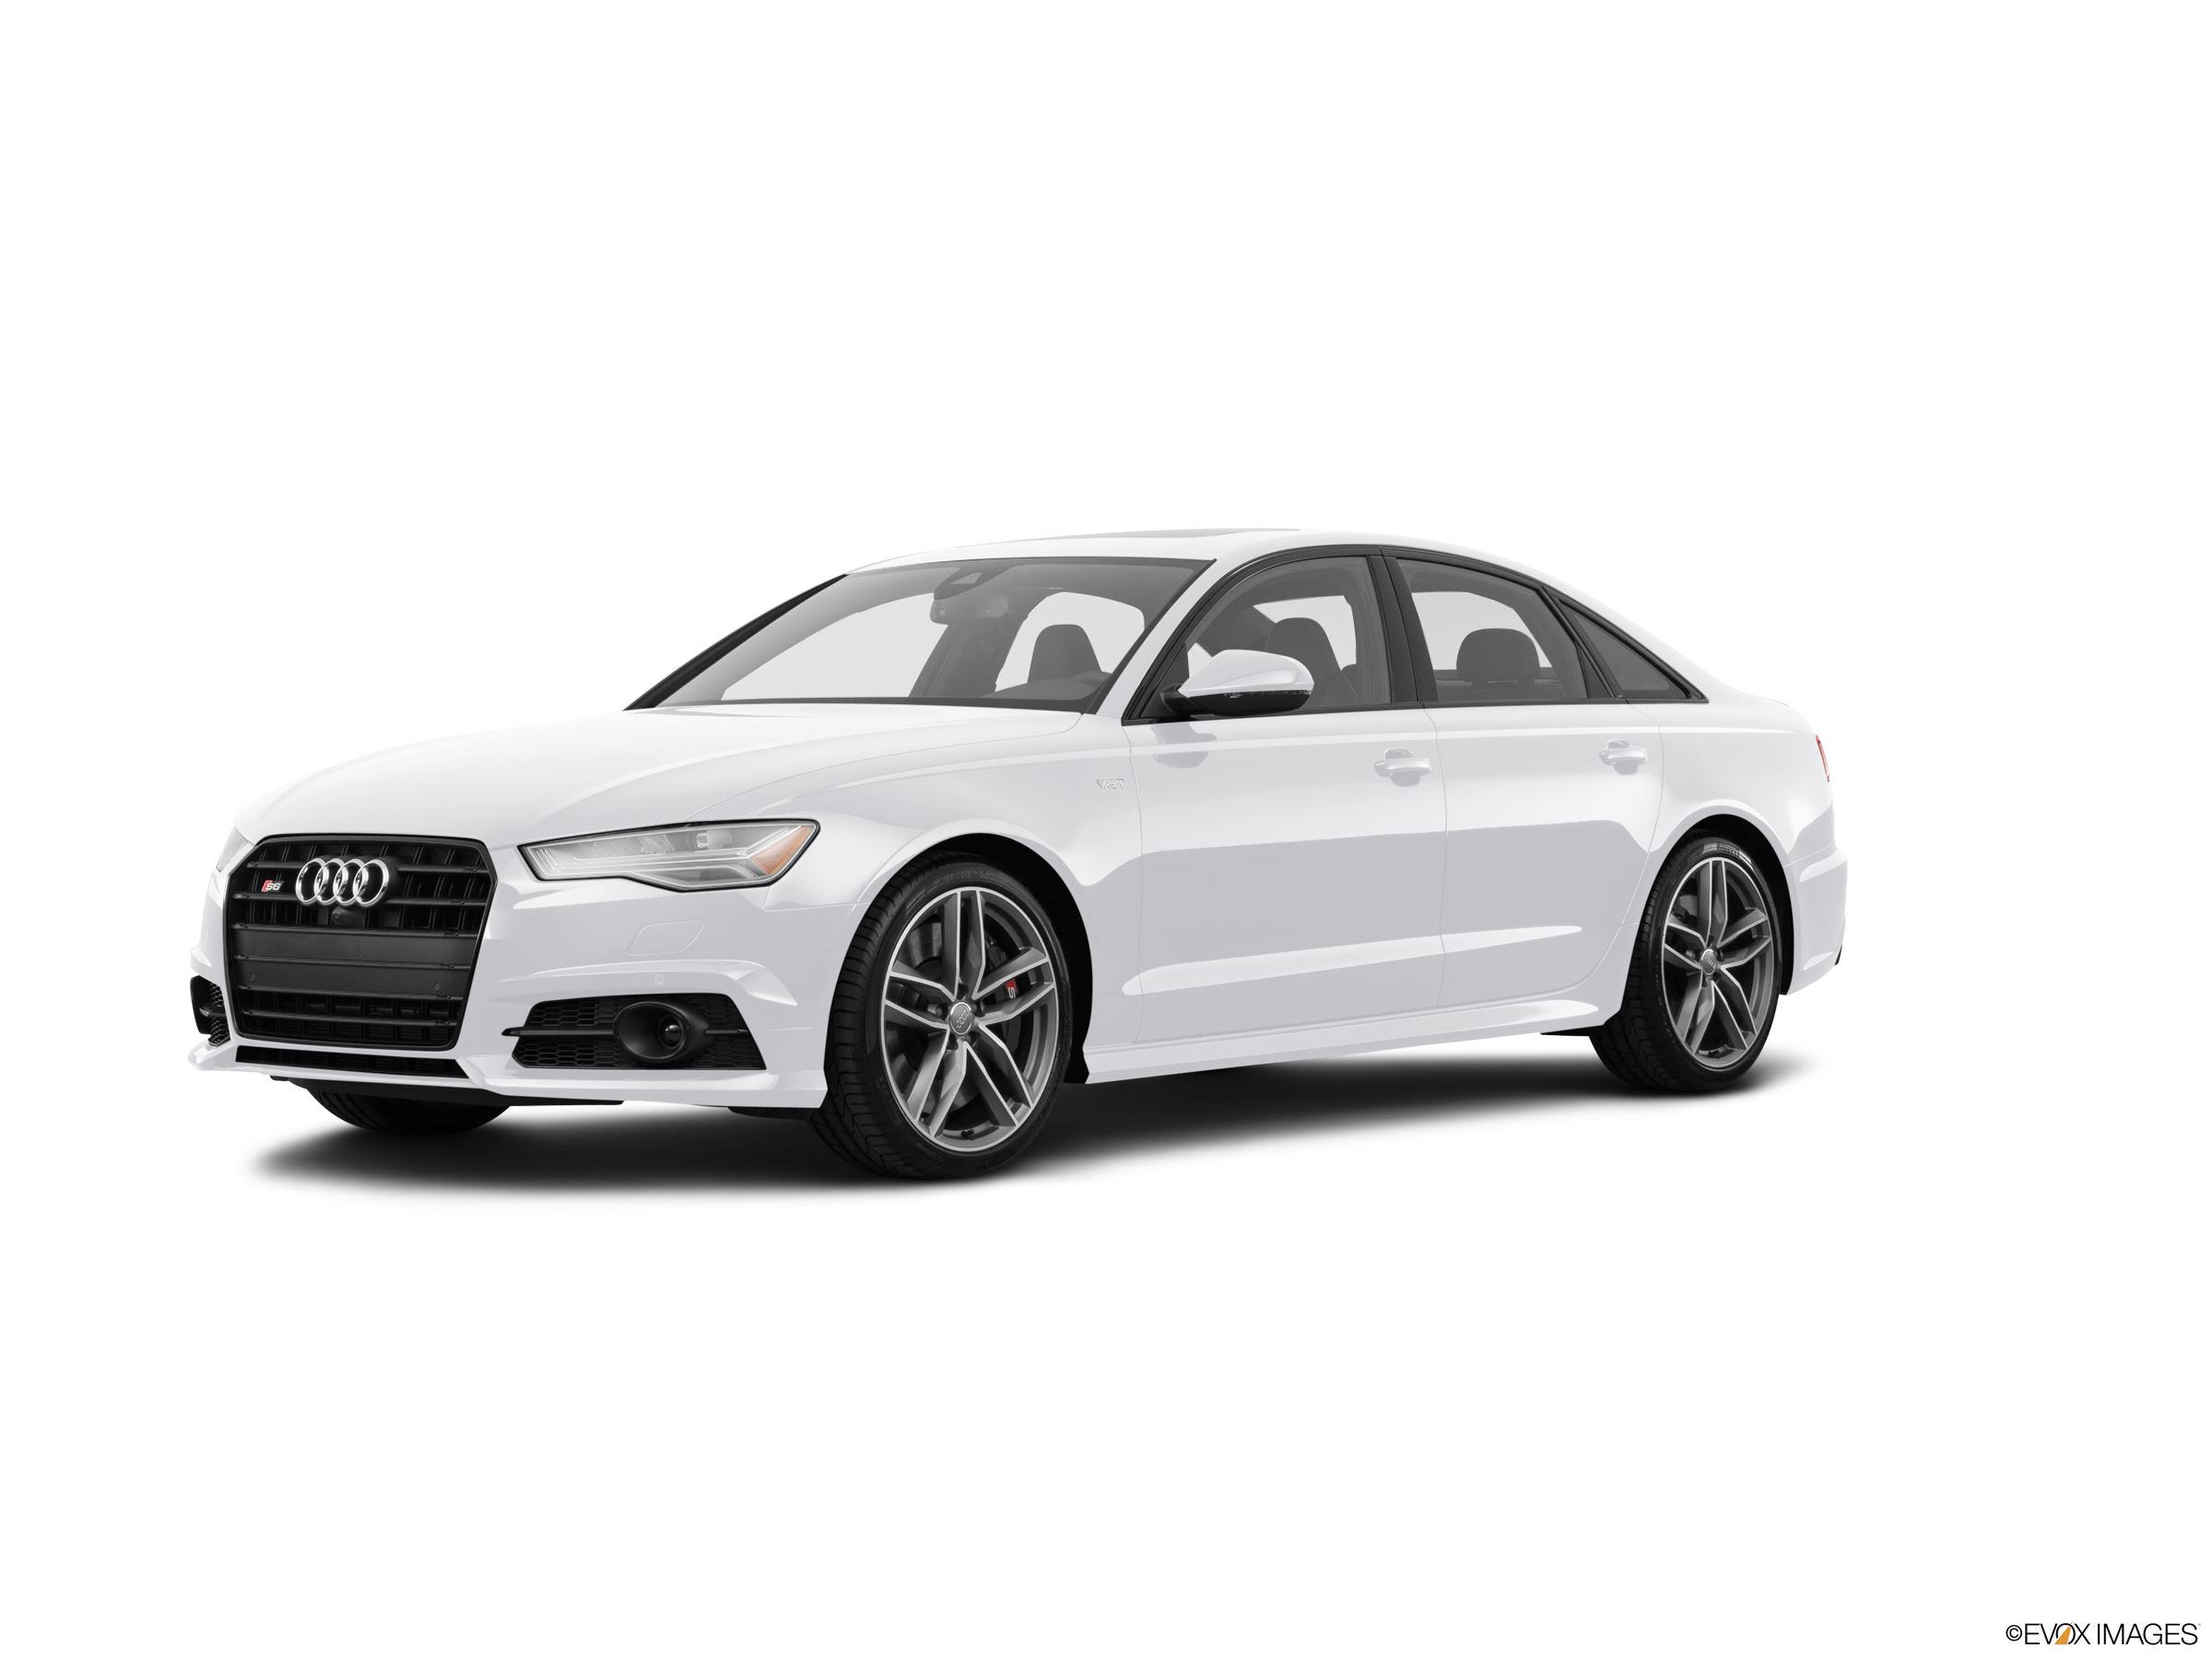 Best Safety Rated Luxury Vehicles of 2018 - 2018 Audi S6